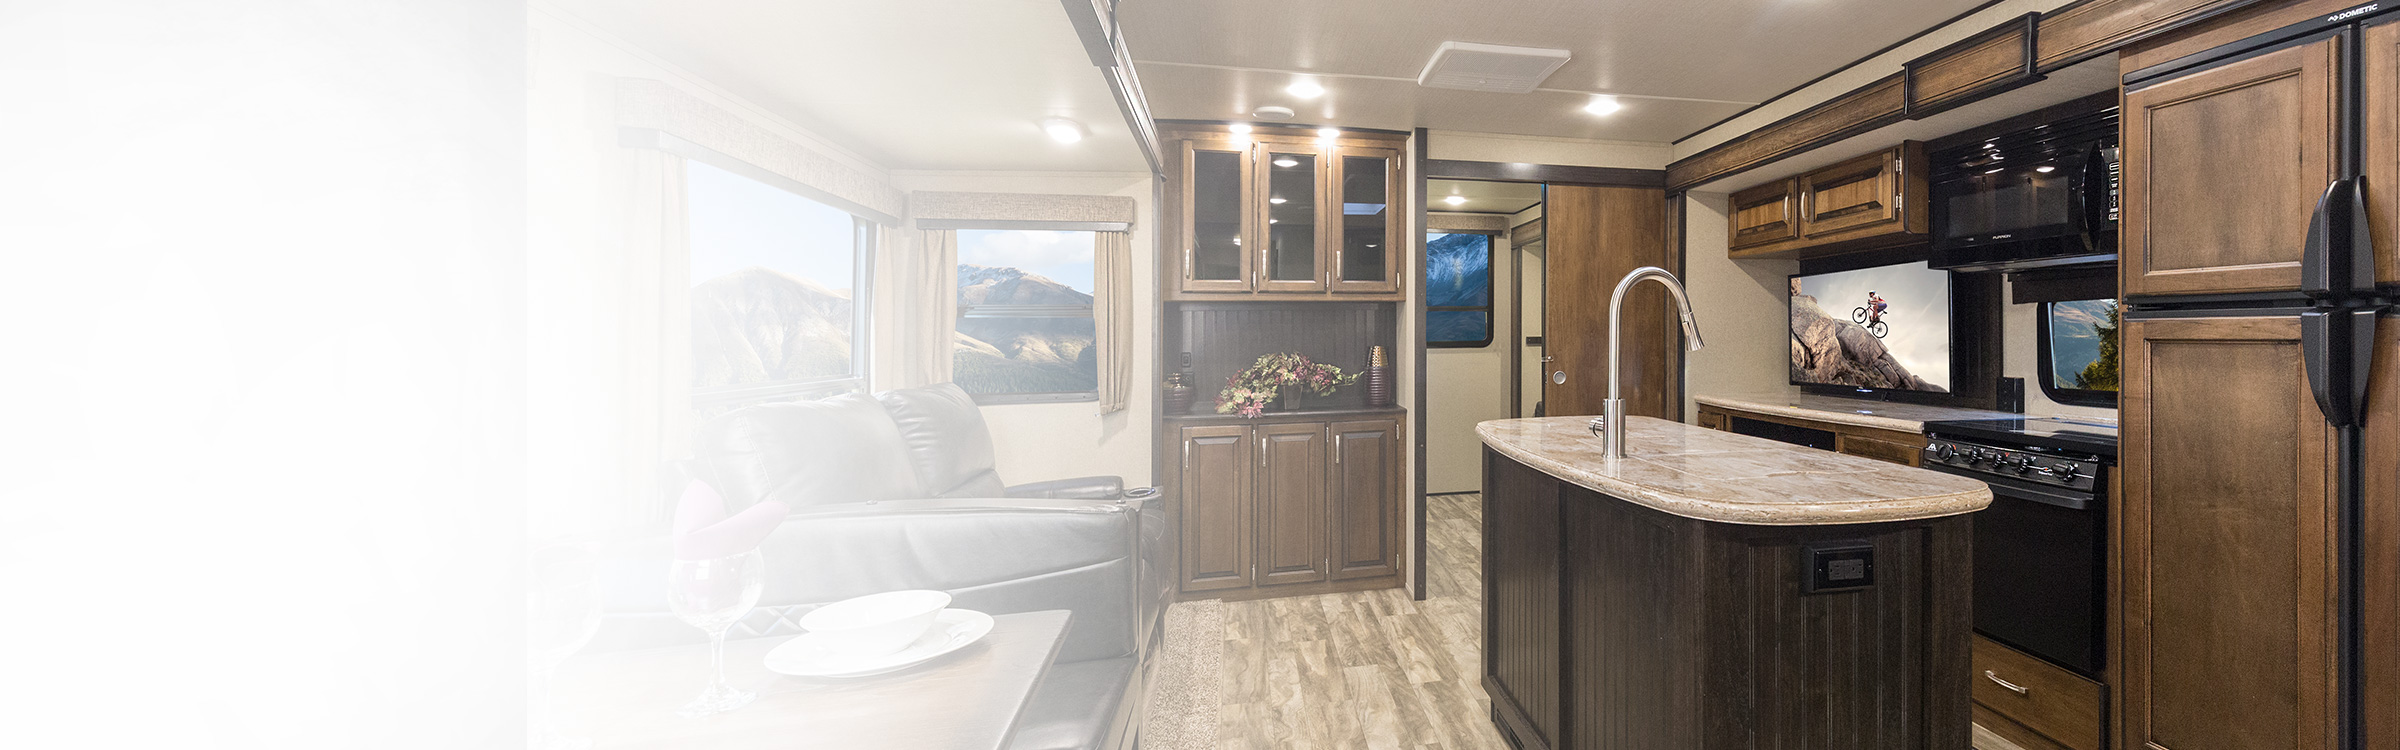 Reflectionu0027s Combination Of Luxury, Value, And Towability In One Amazing  Package Continues To Exceed The Expectations Of Our Retail Customers.